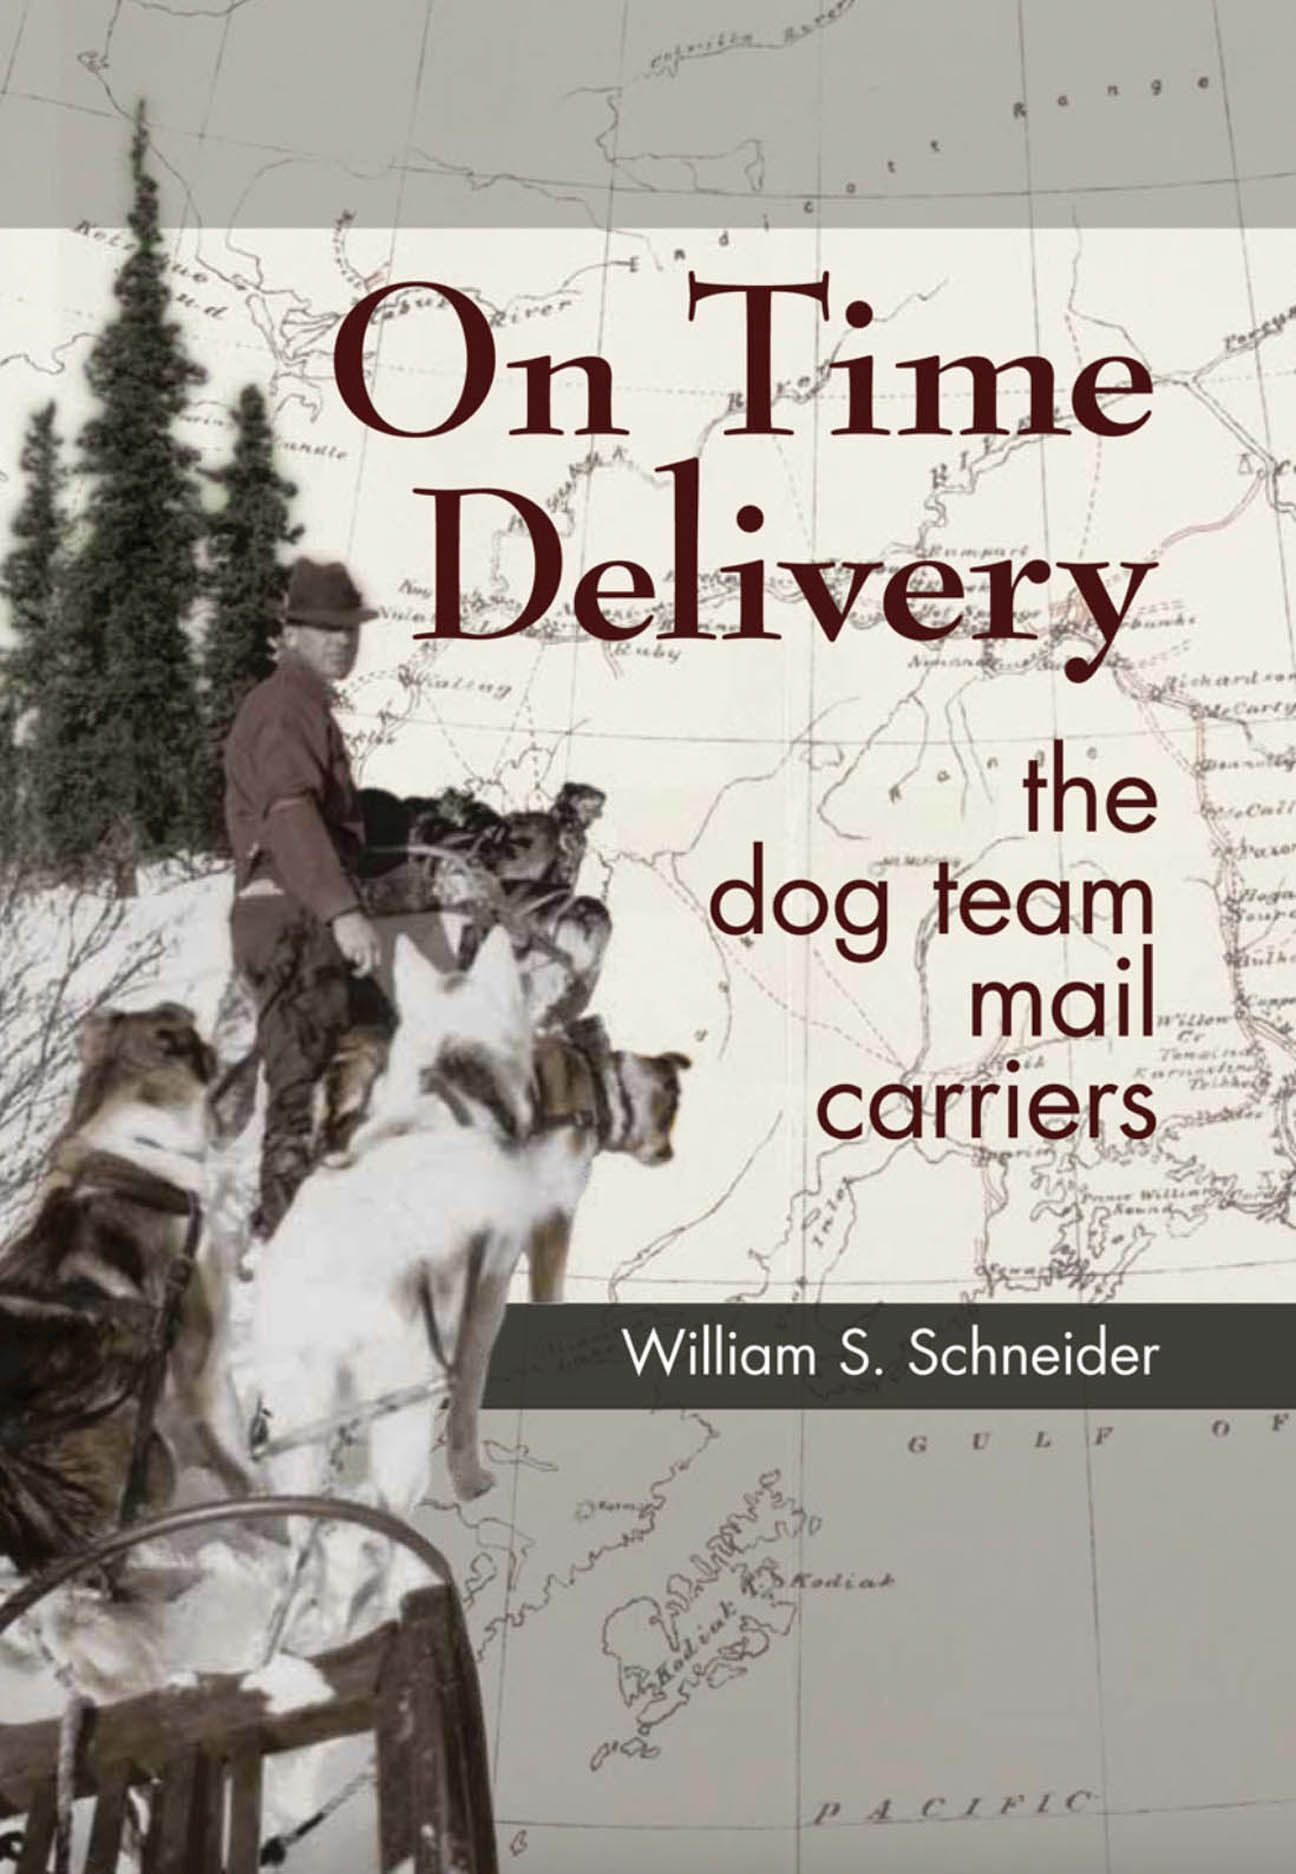 On Time Delivery: The Dog Team Mail Carriers